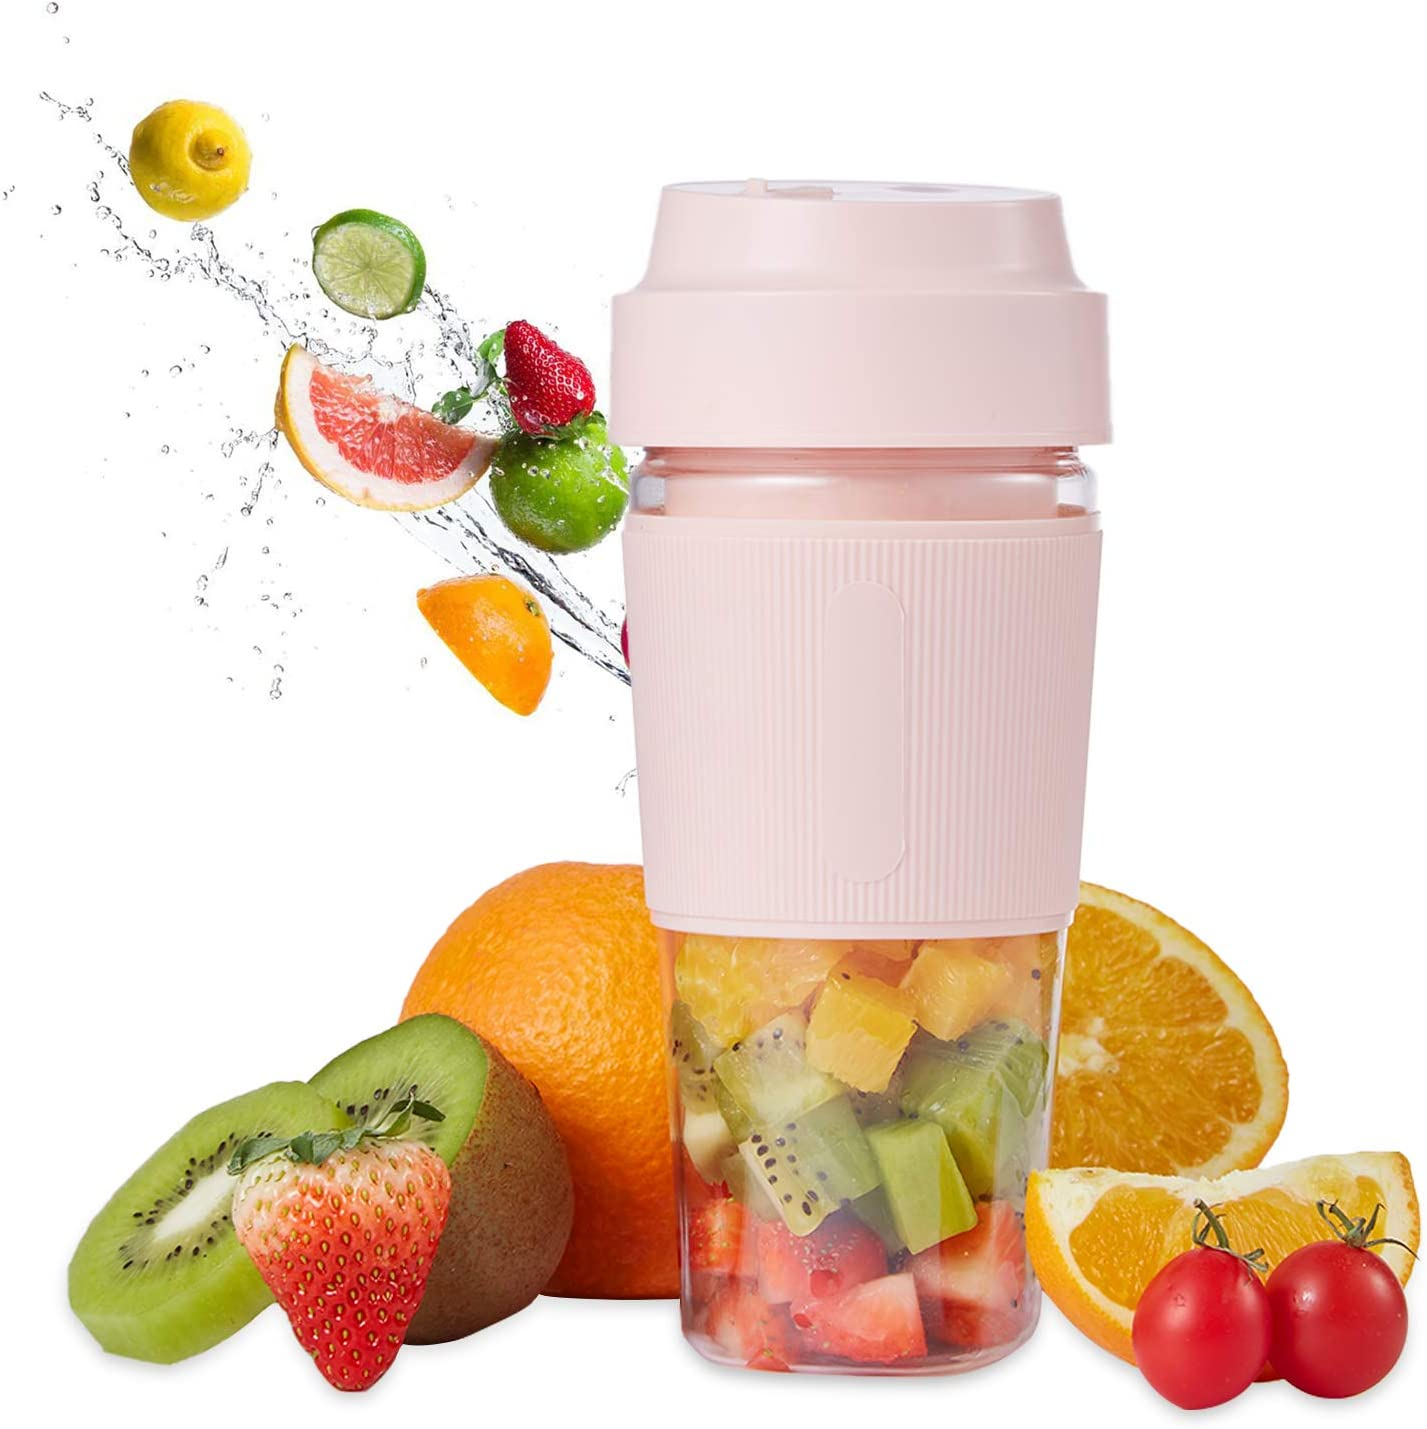 Portable Blender,Mini Personal Mixer Fruit Rechargeable with USB,Personal Size Blender for Smoothie,Juice Cup with Four Blades for Superb Mixing (Pink)